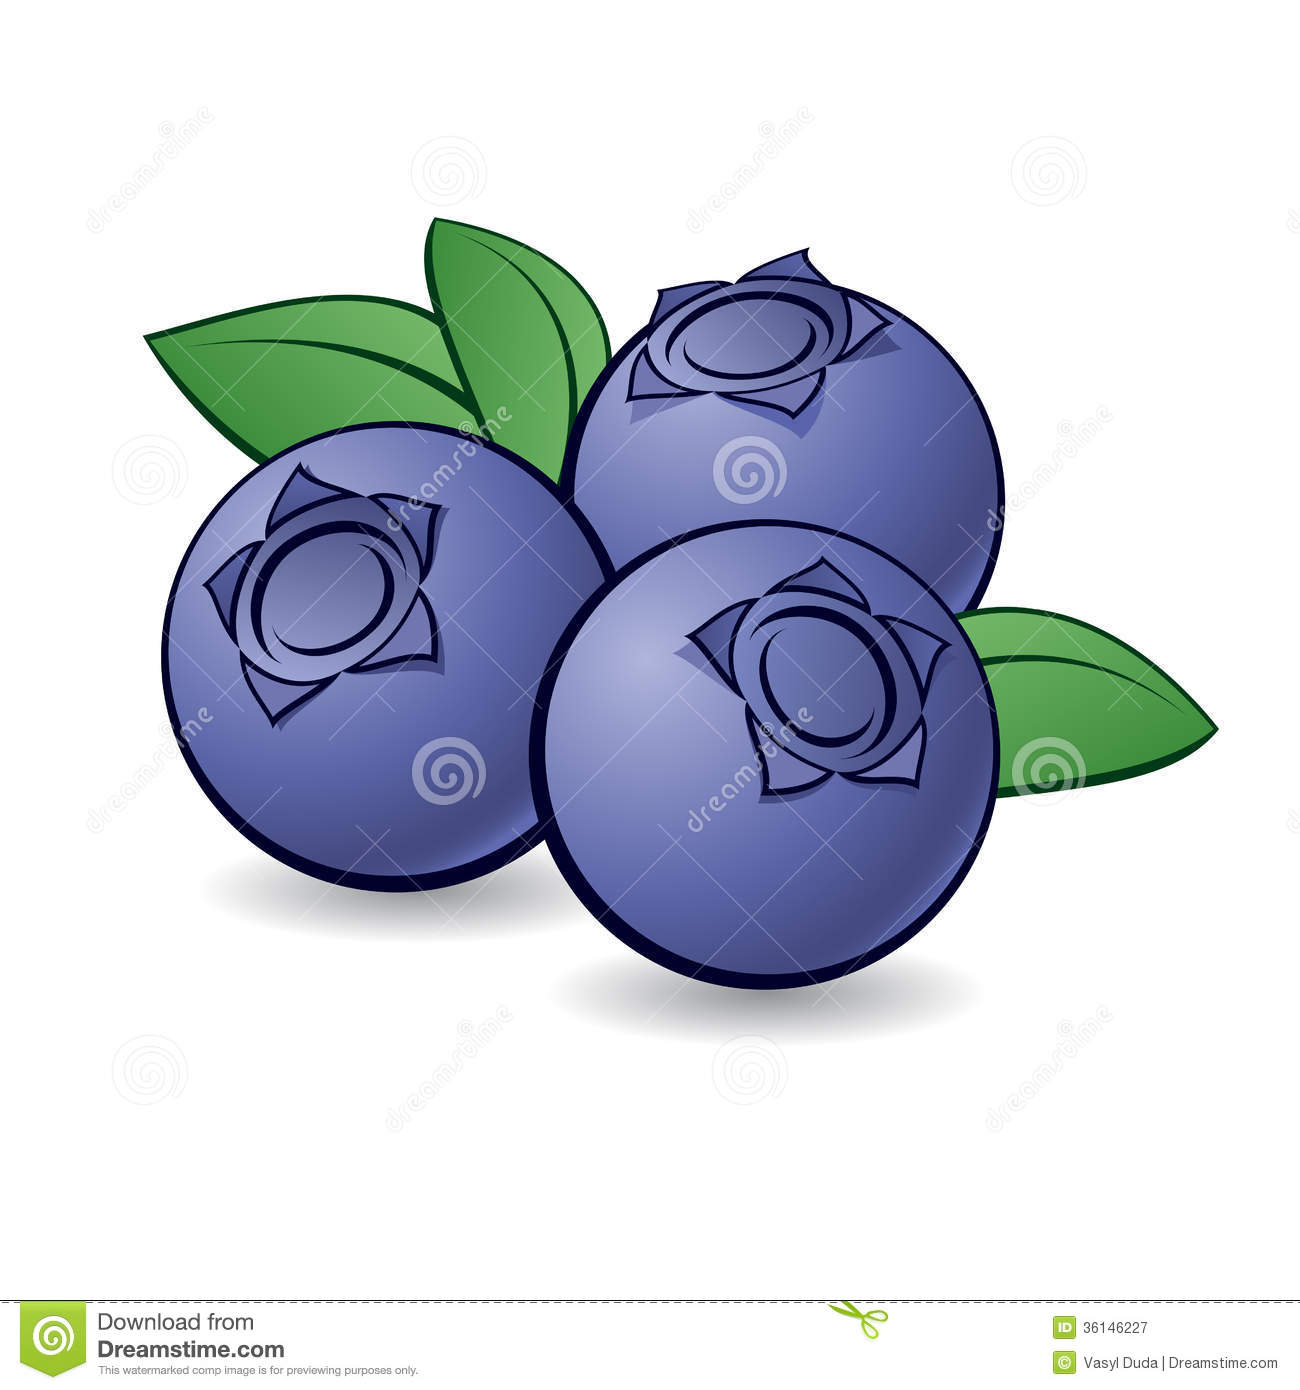 Cartoon Blueberry. Royalty Free Stock Photography - Image: 36146227